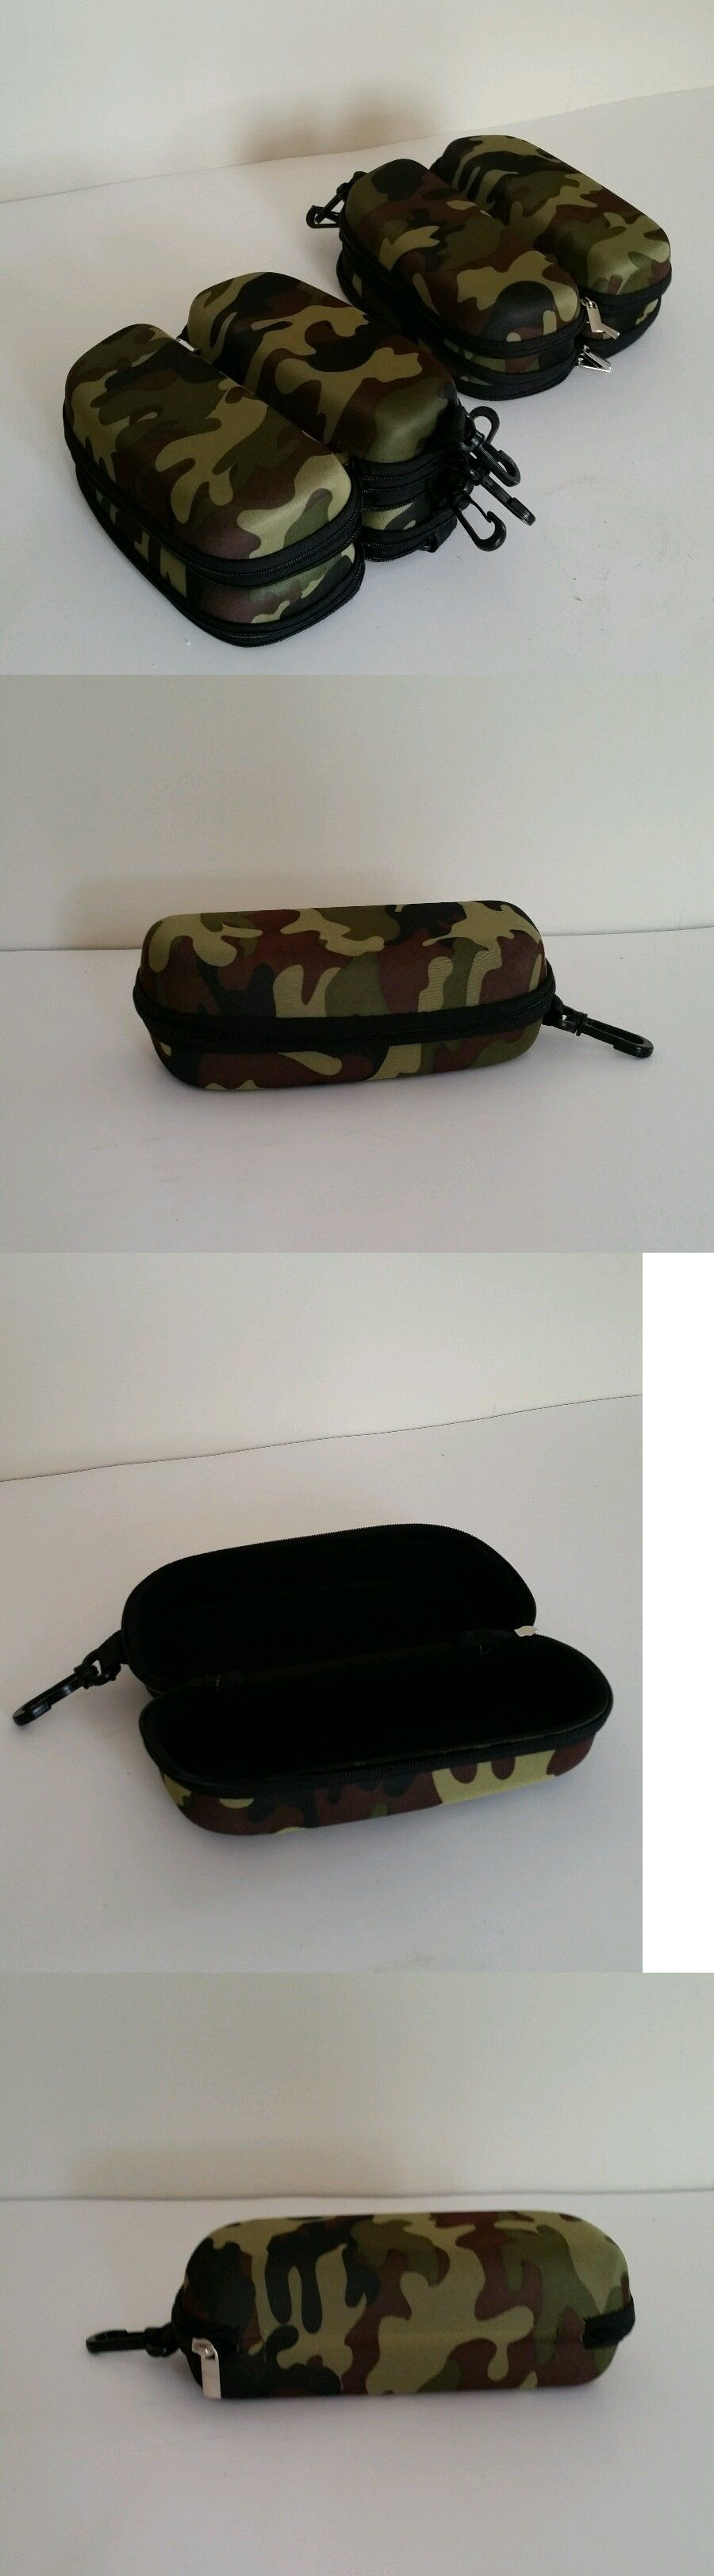 Eyeglass Cases: Qty 100 Camouflage Camou Clamshell Hard Sunglasses Case Cheap Bulk Discount Lot BUY IT NOW ONLY: $119.99